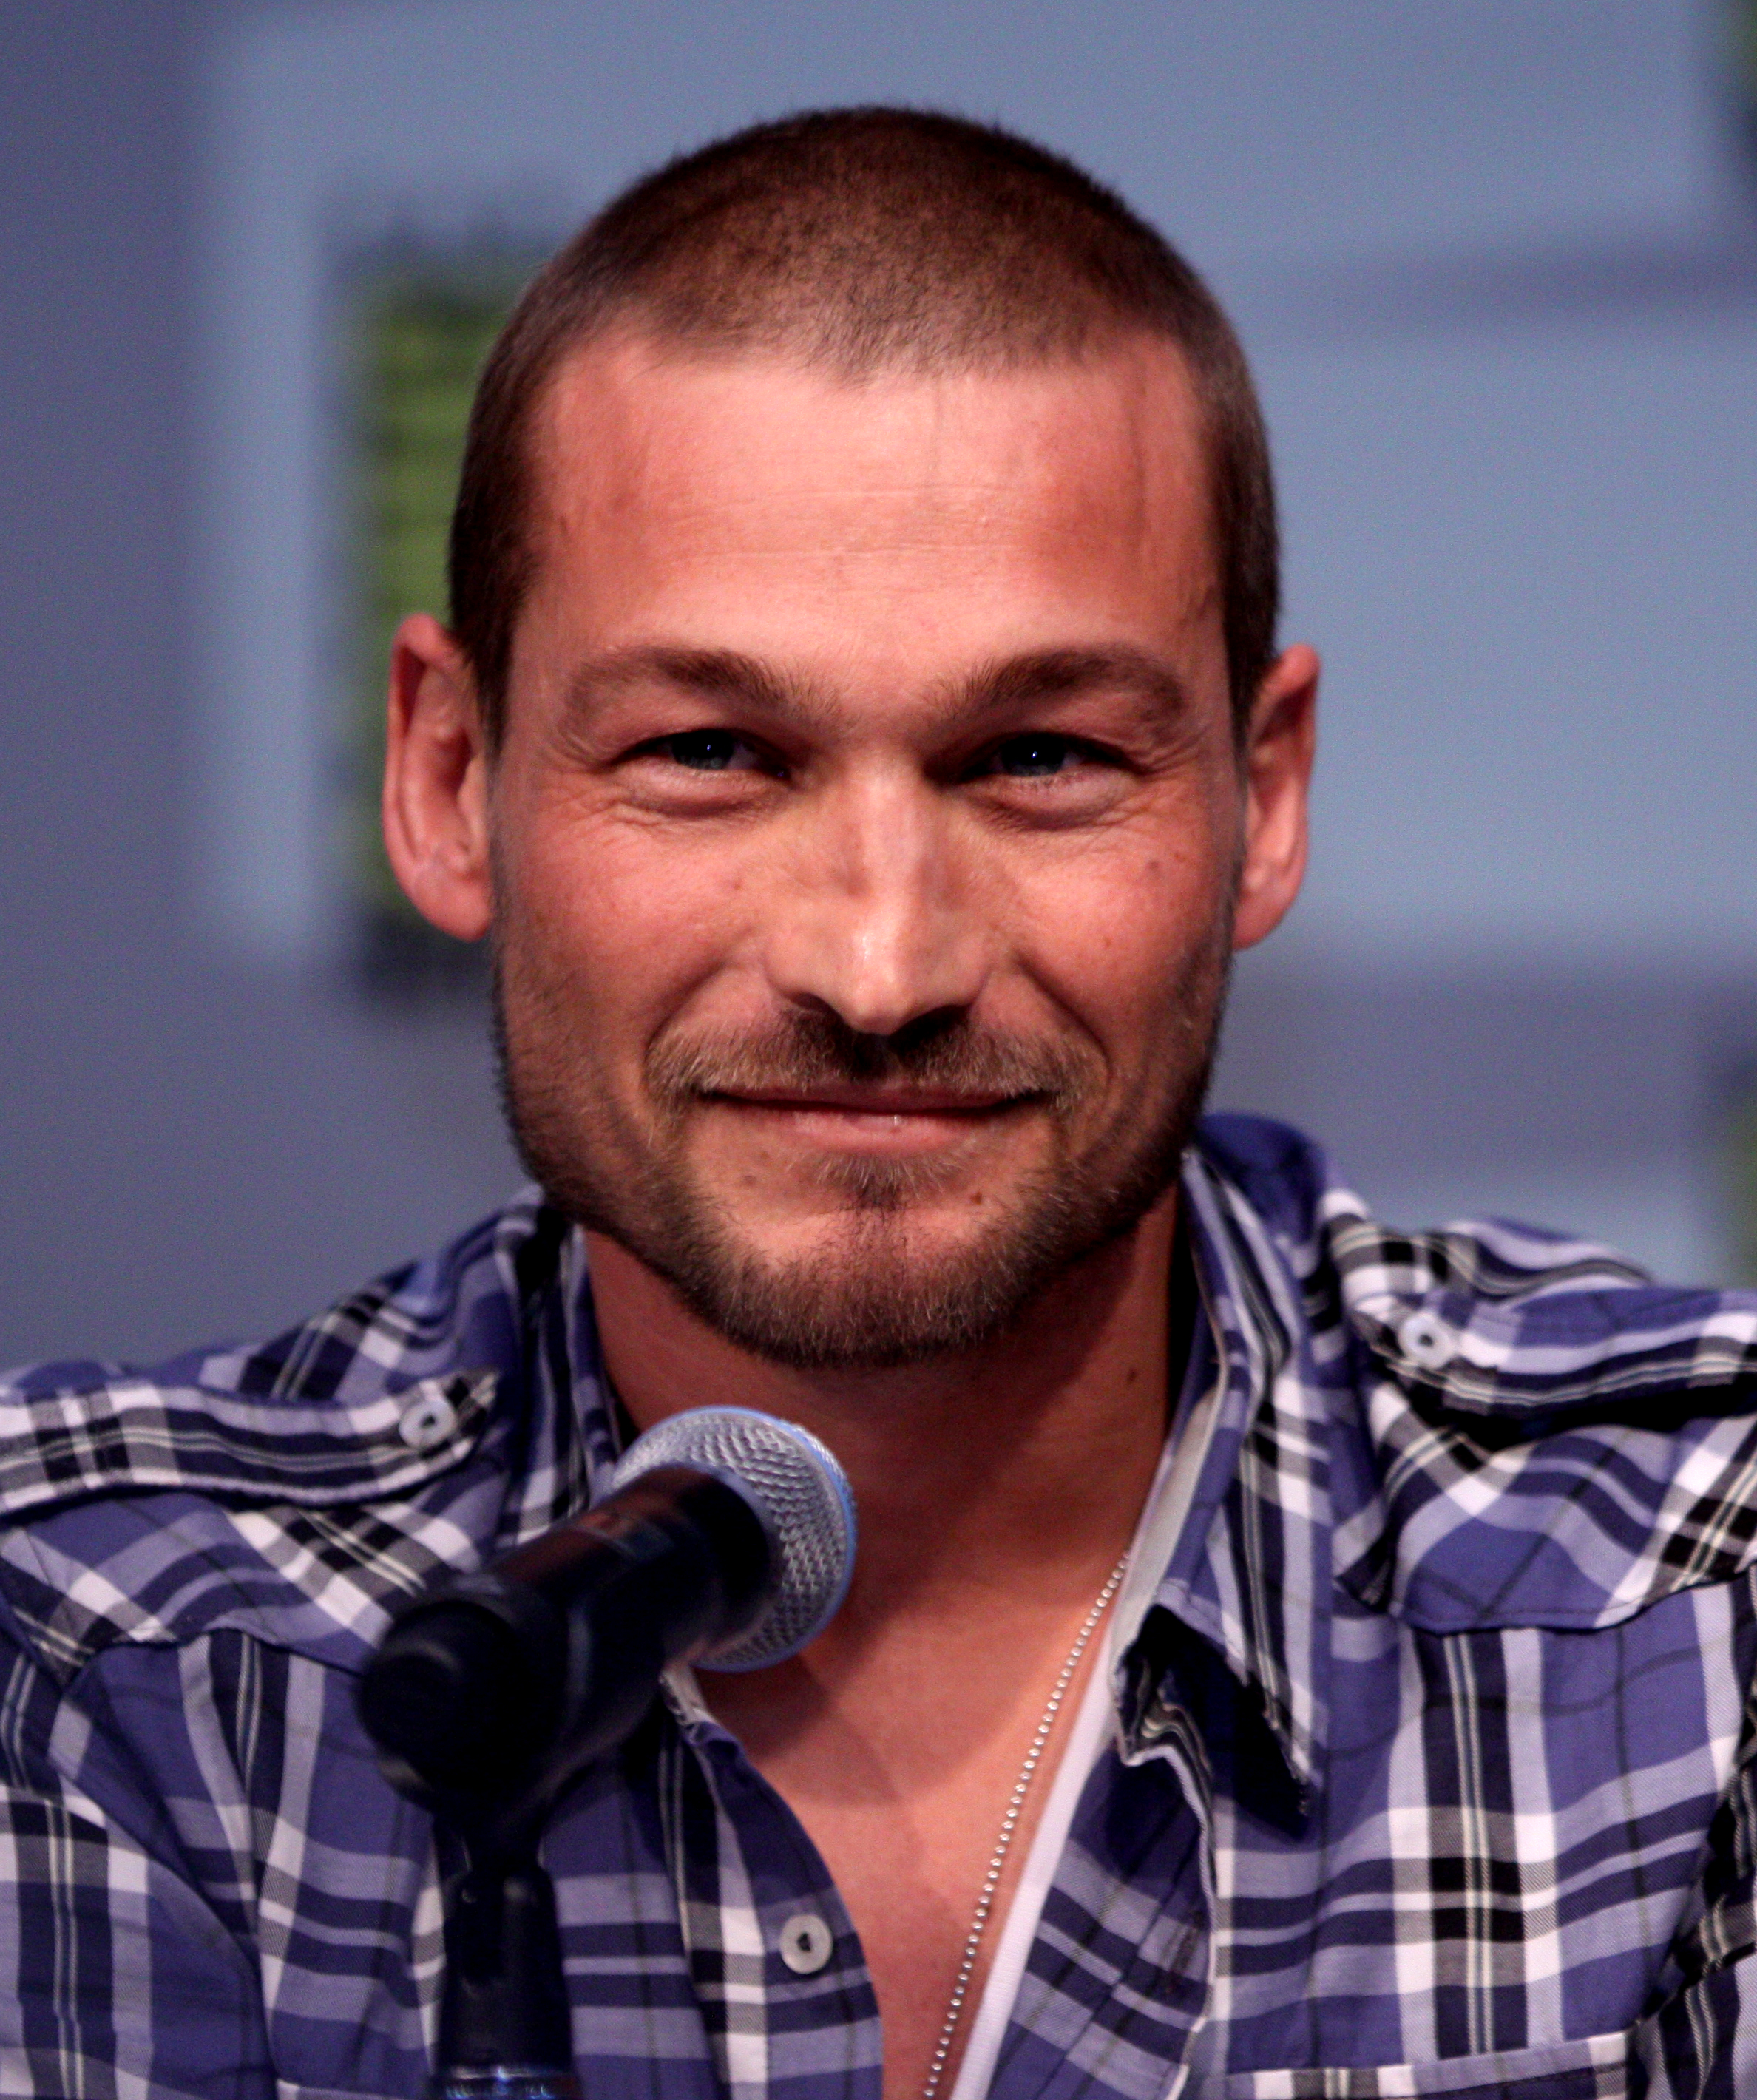 Description Andy Whitfield by Gage Skidmore jpgAndy Whitfield